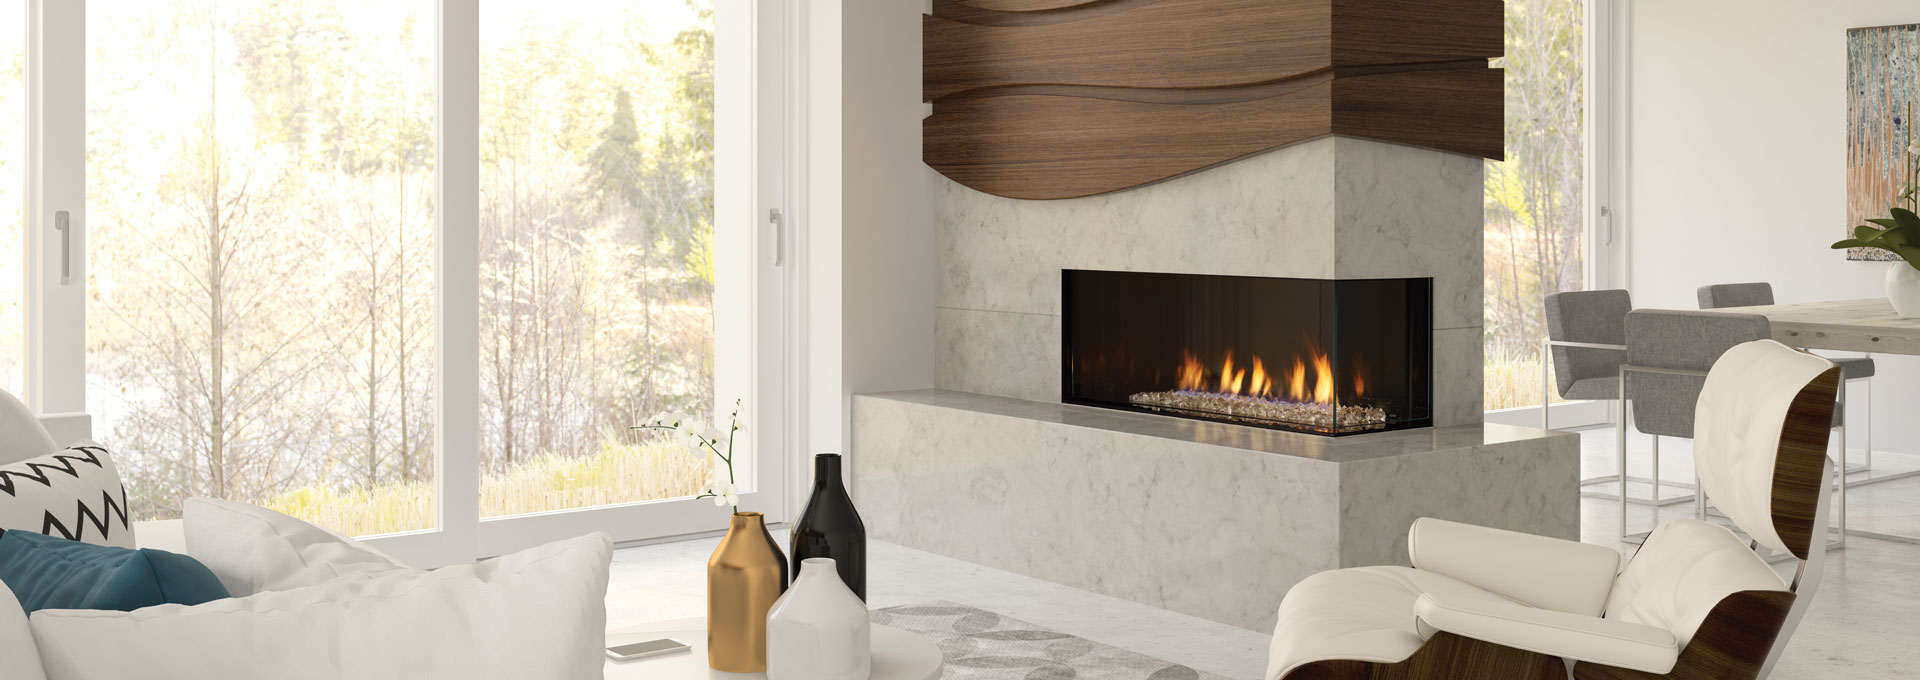 32 Best Fireplace Design Ideas For 2019: Top 8 Fireplace Design Trends Of 2018